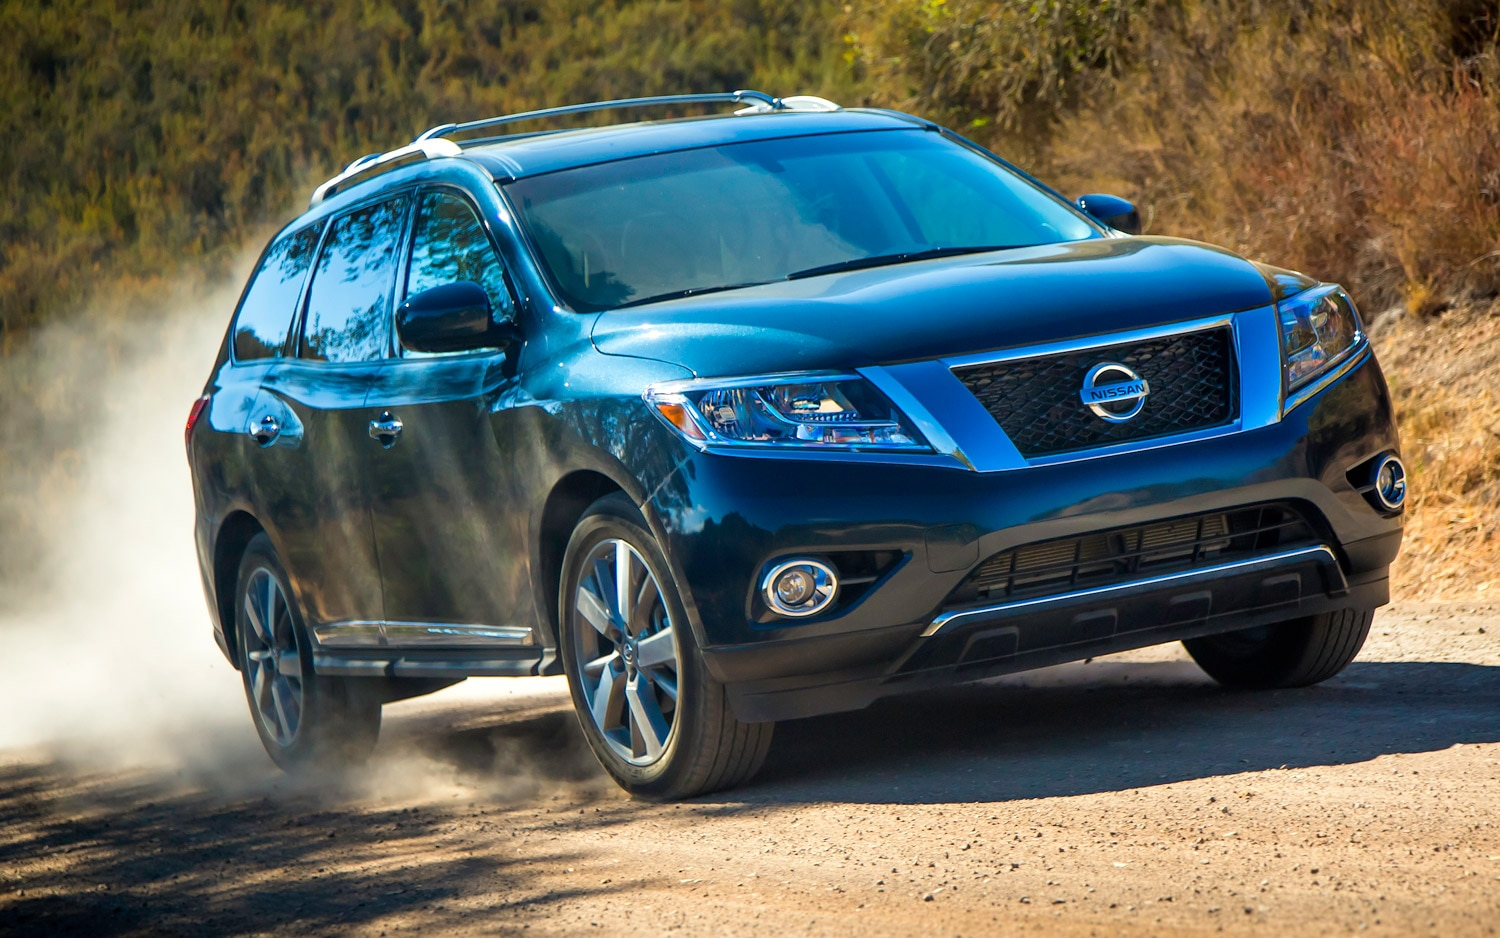 2013 Nissan Pathfinder Blue In Motion